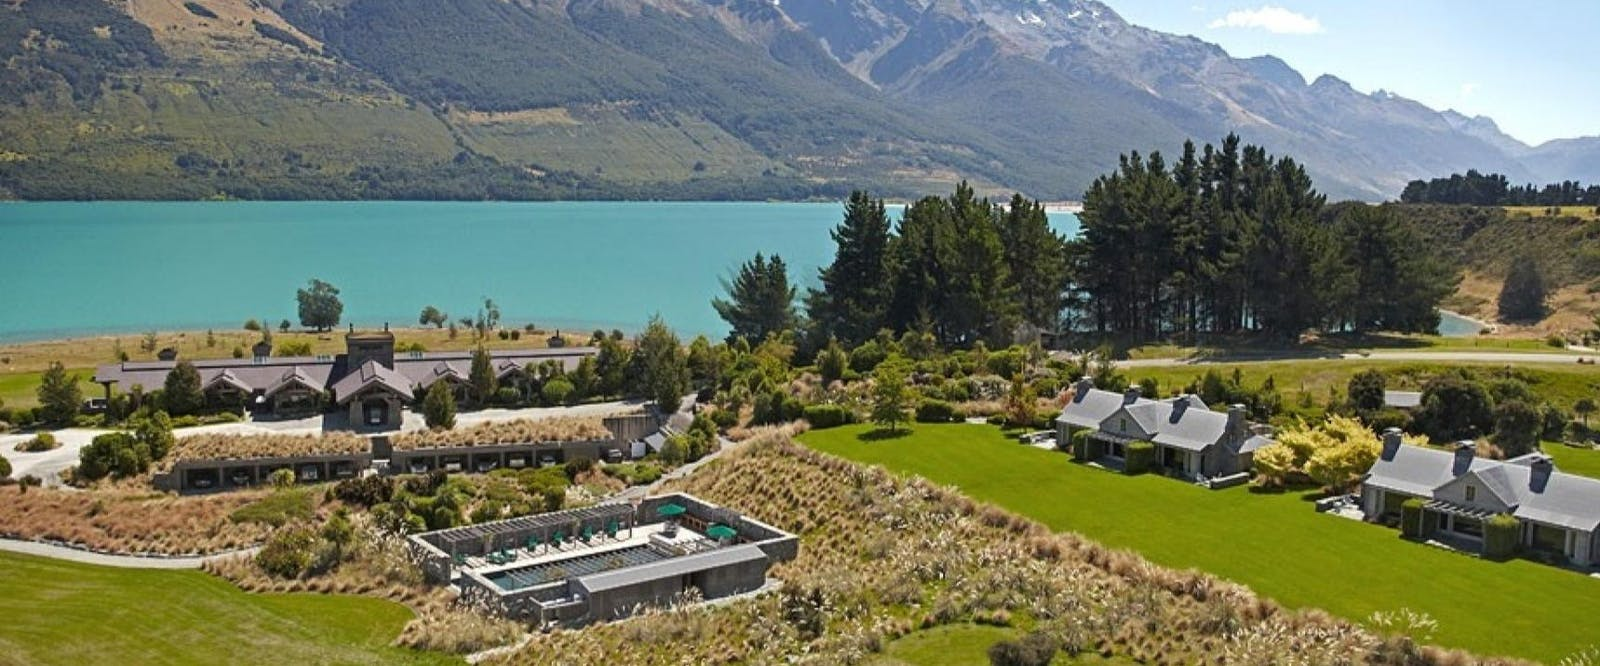 Aerial View of Blanket Bay, Glenorchy